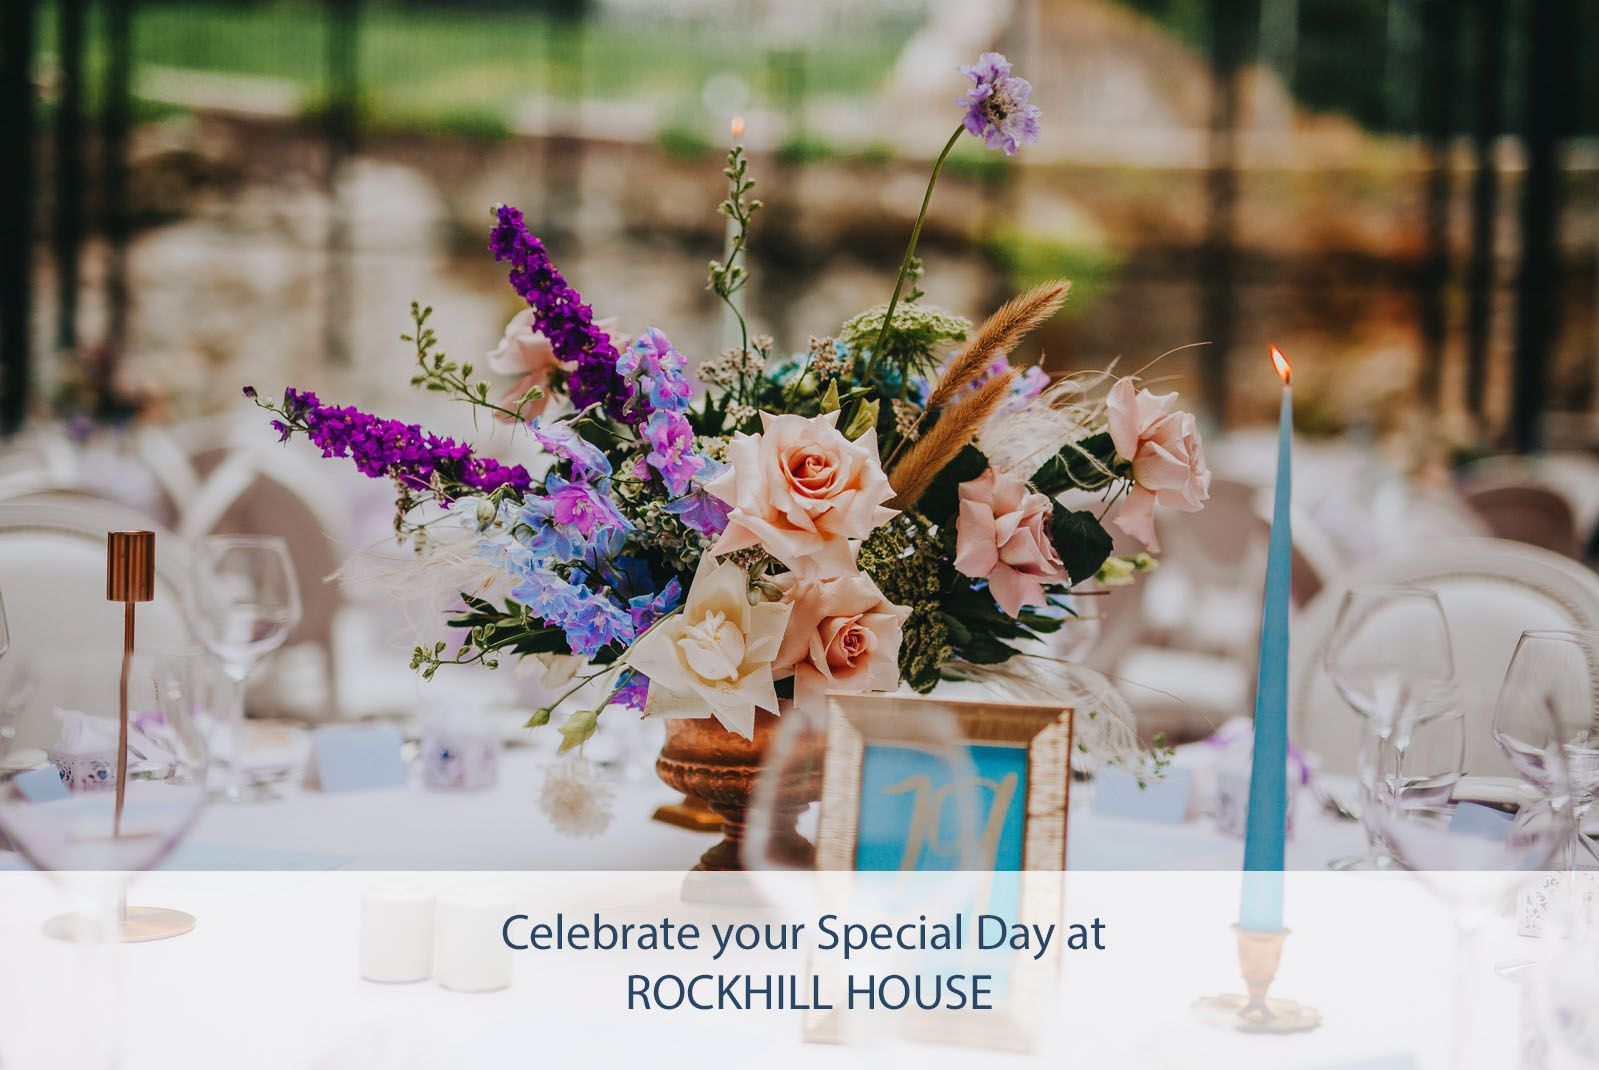 Party Rockhill House